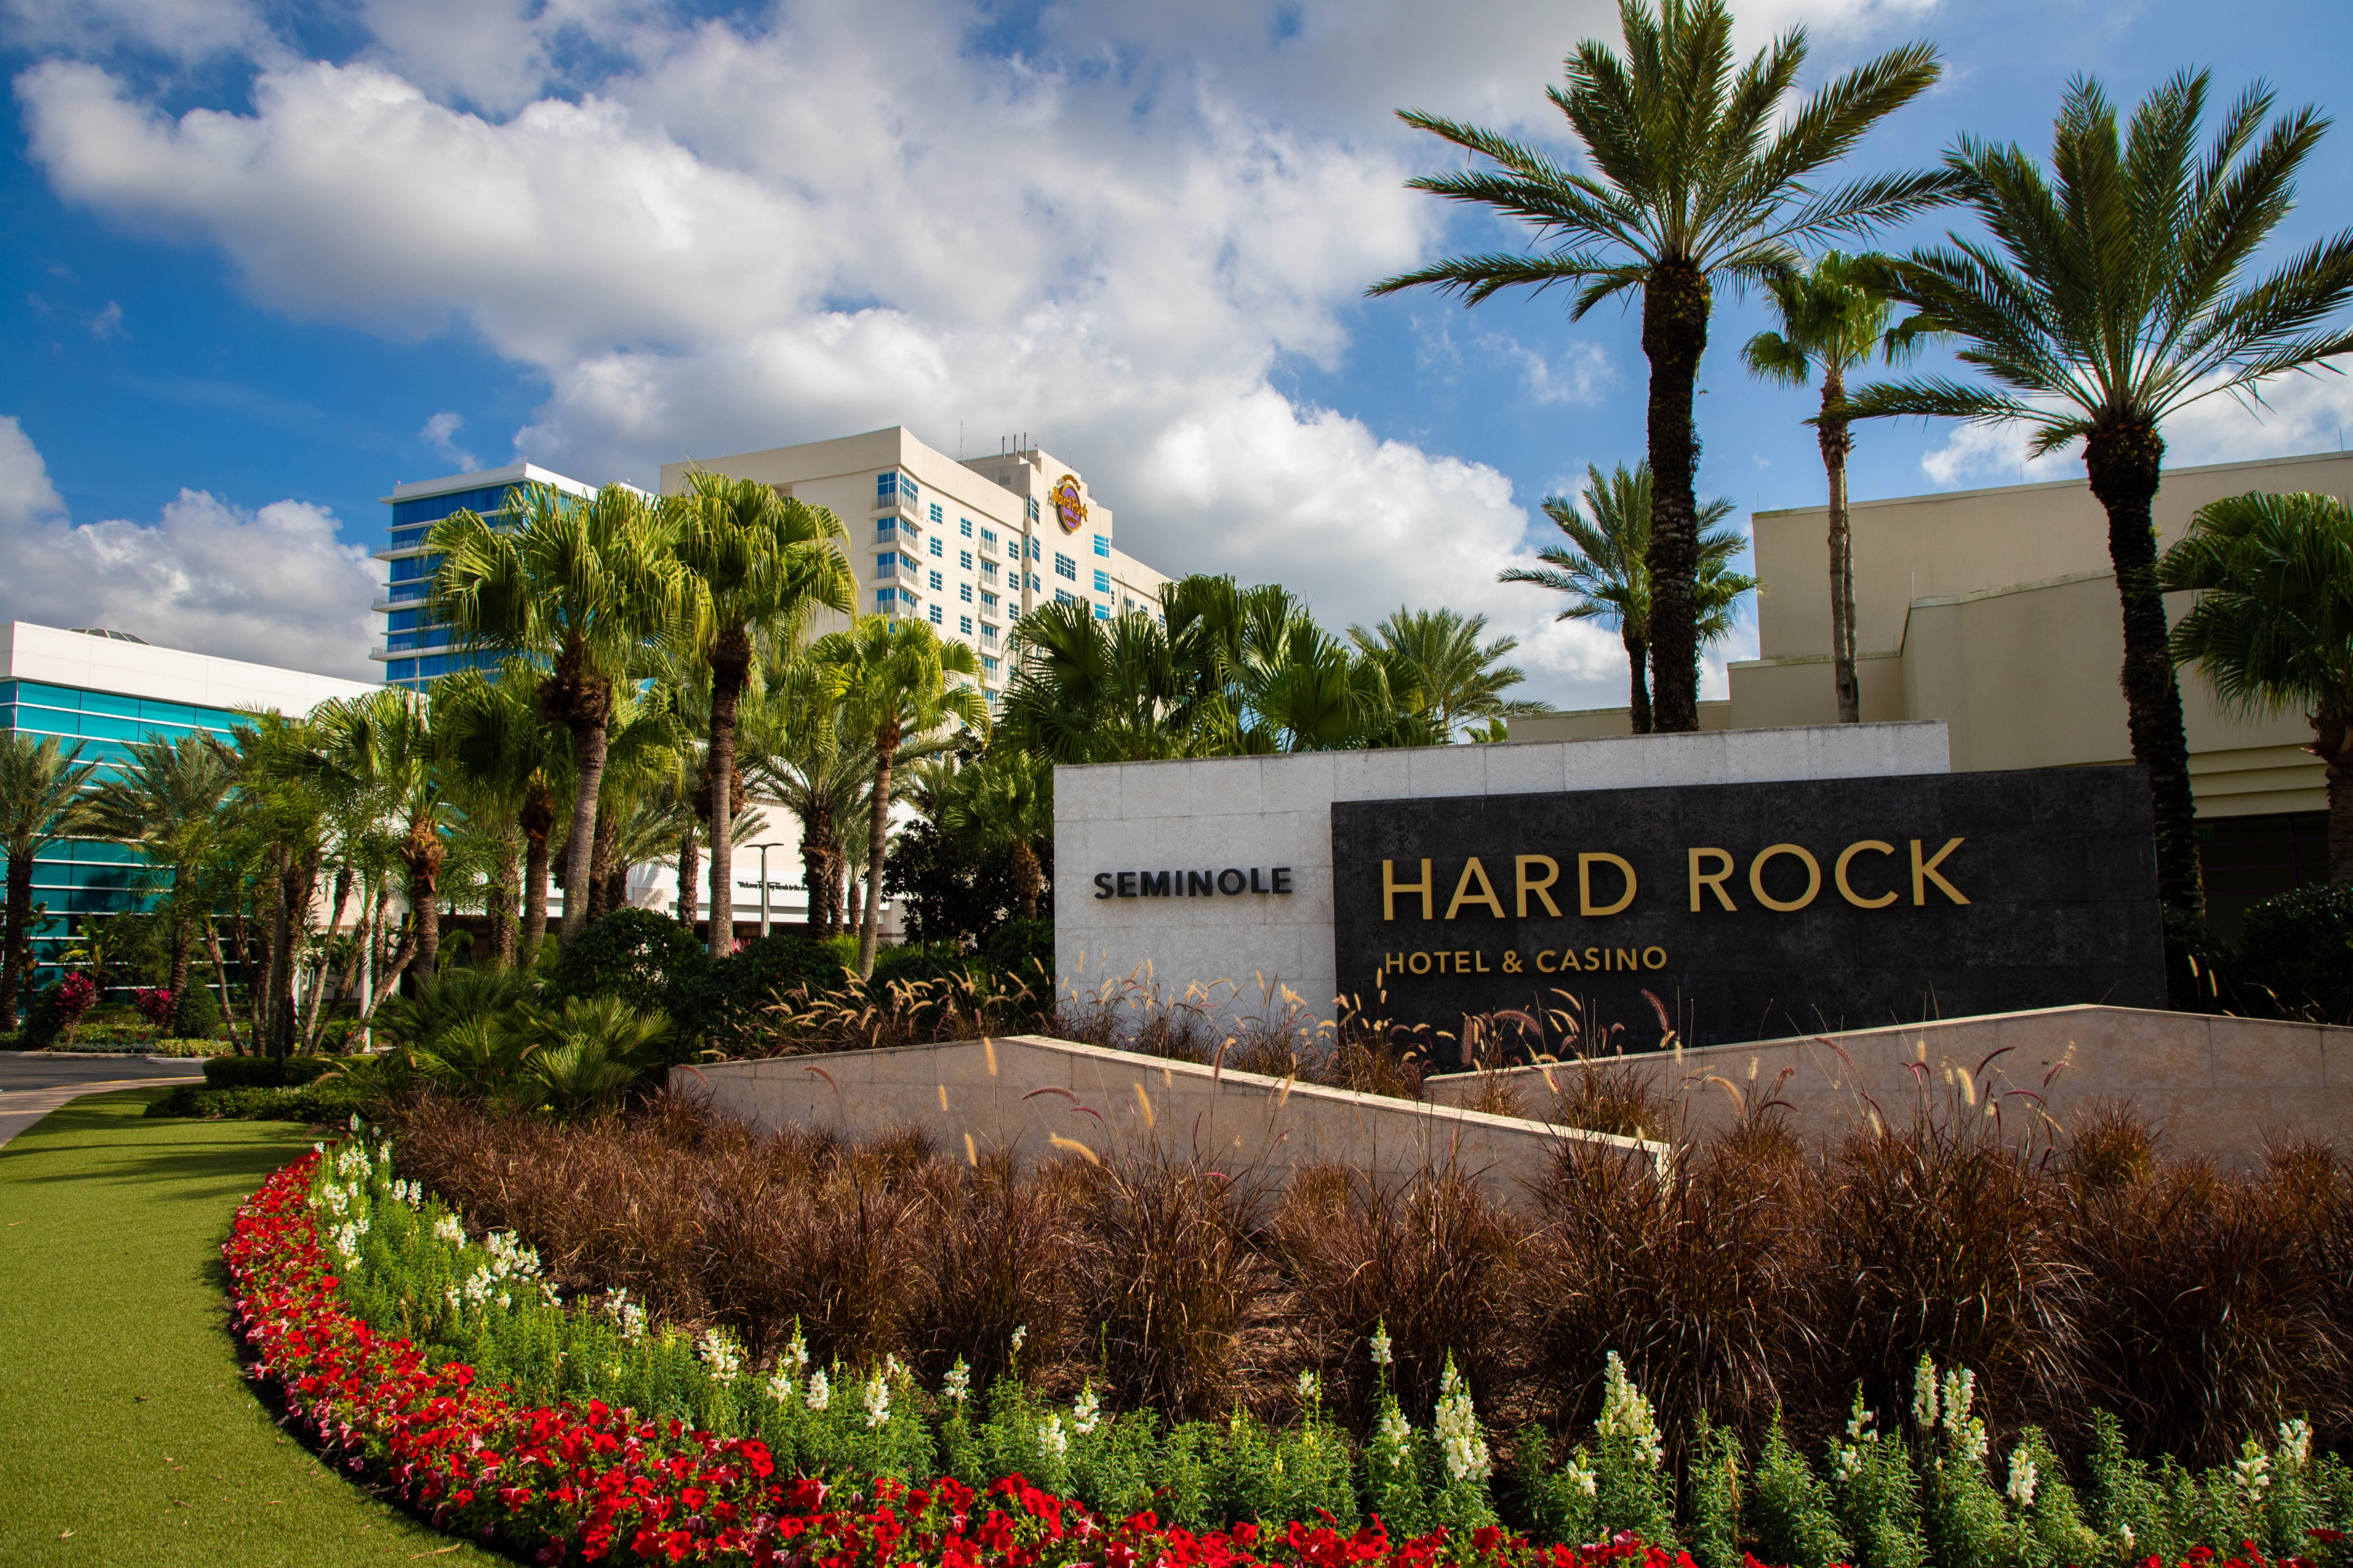 Florida Poker Rooms to Reopen This Week with Restrictions